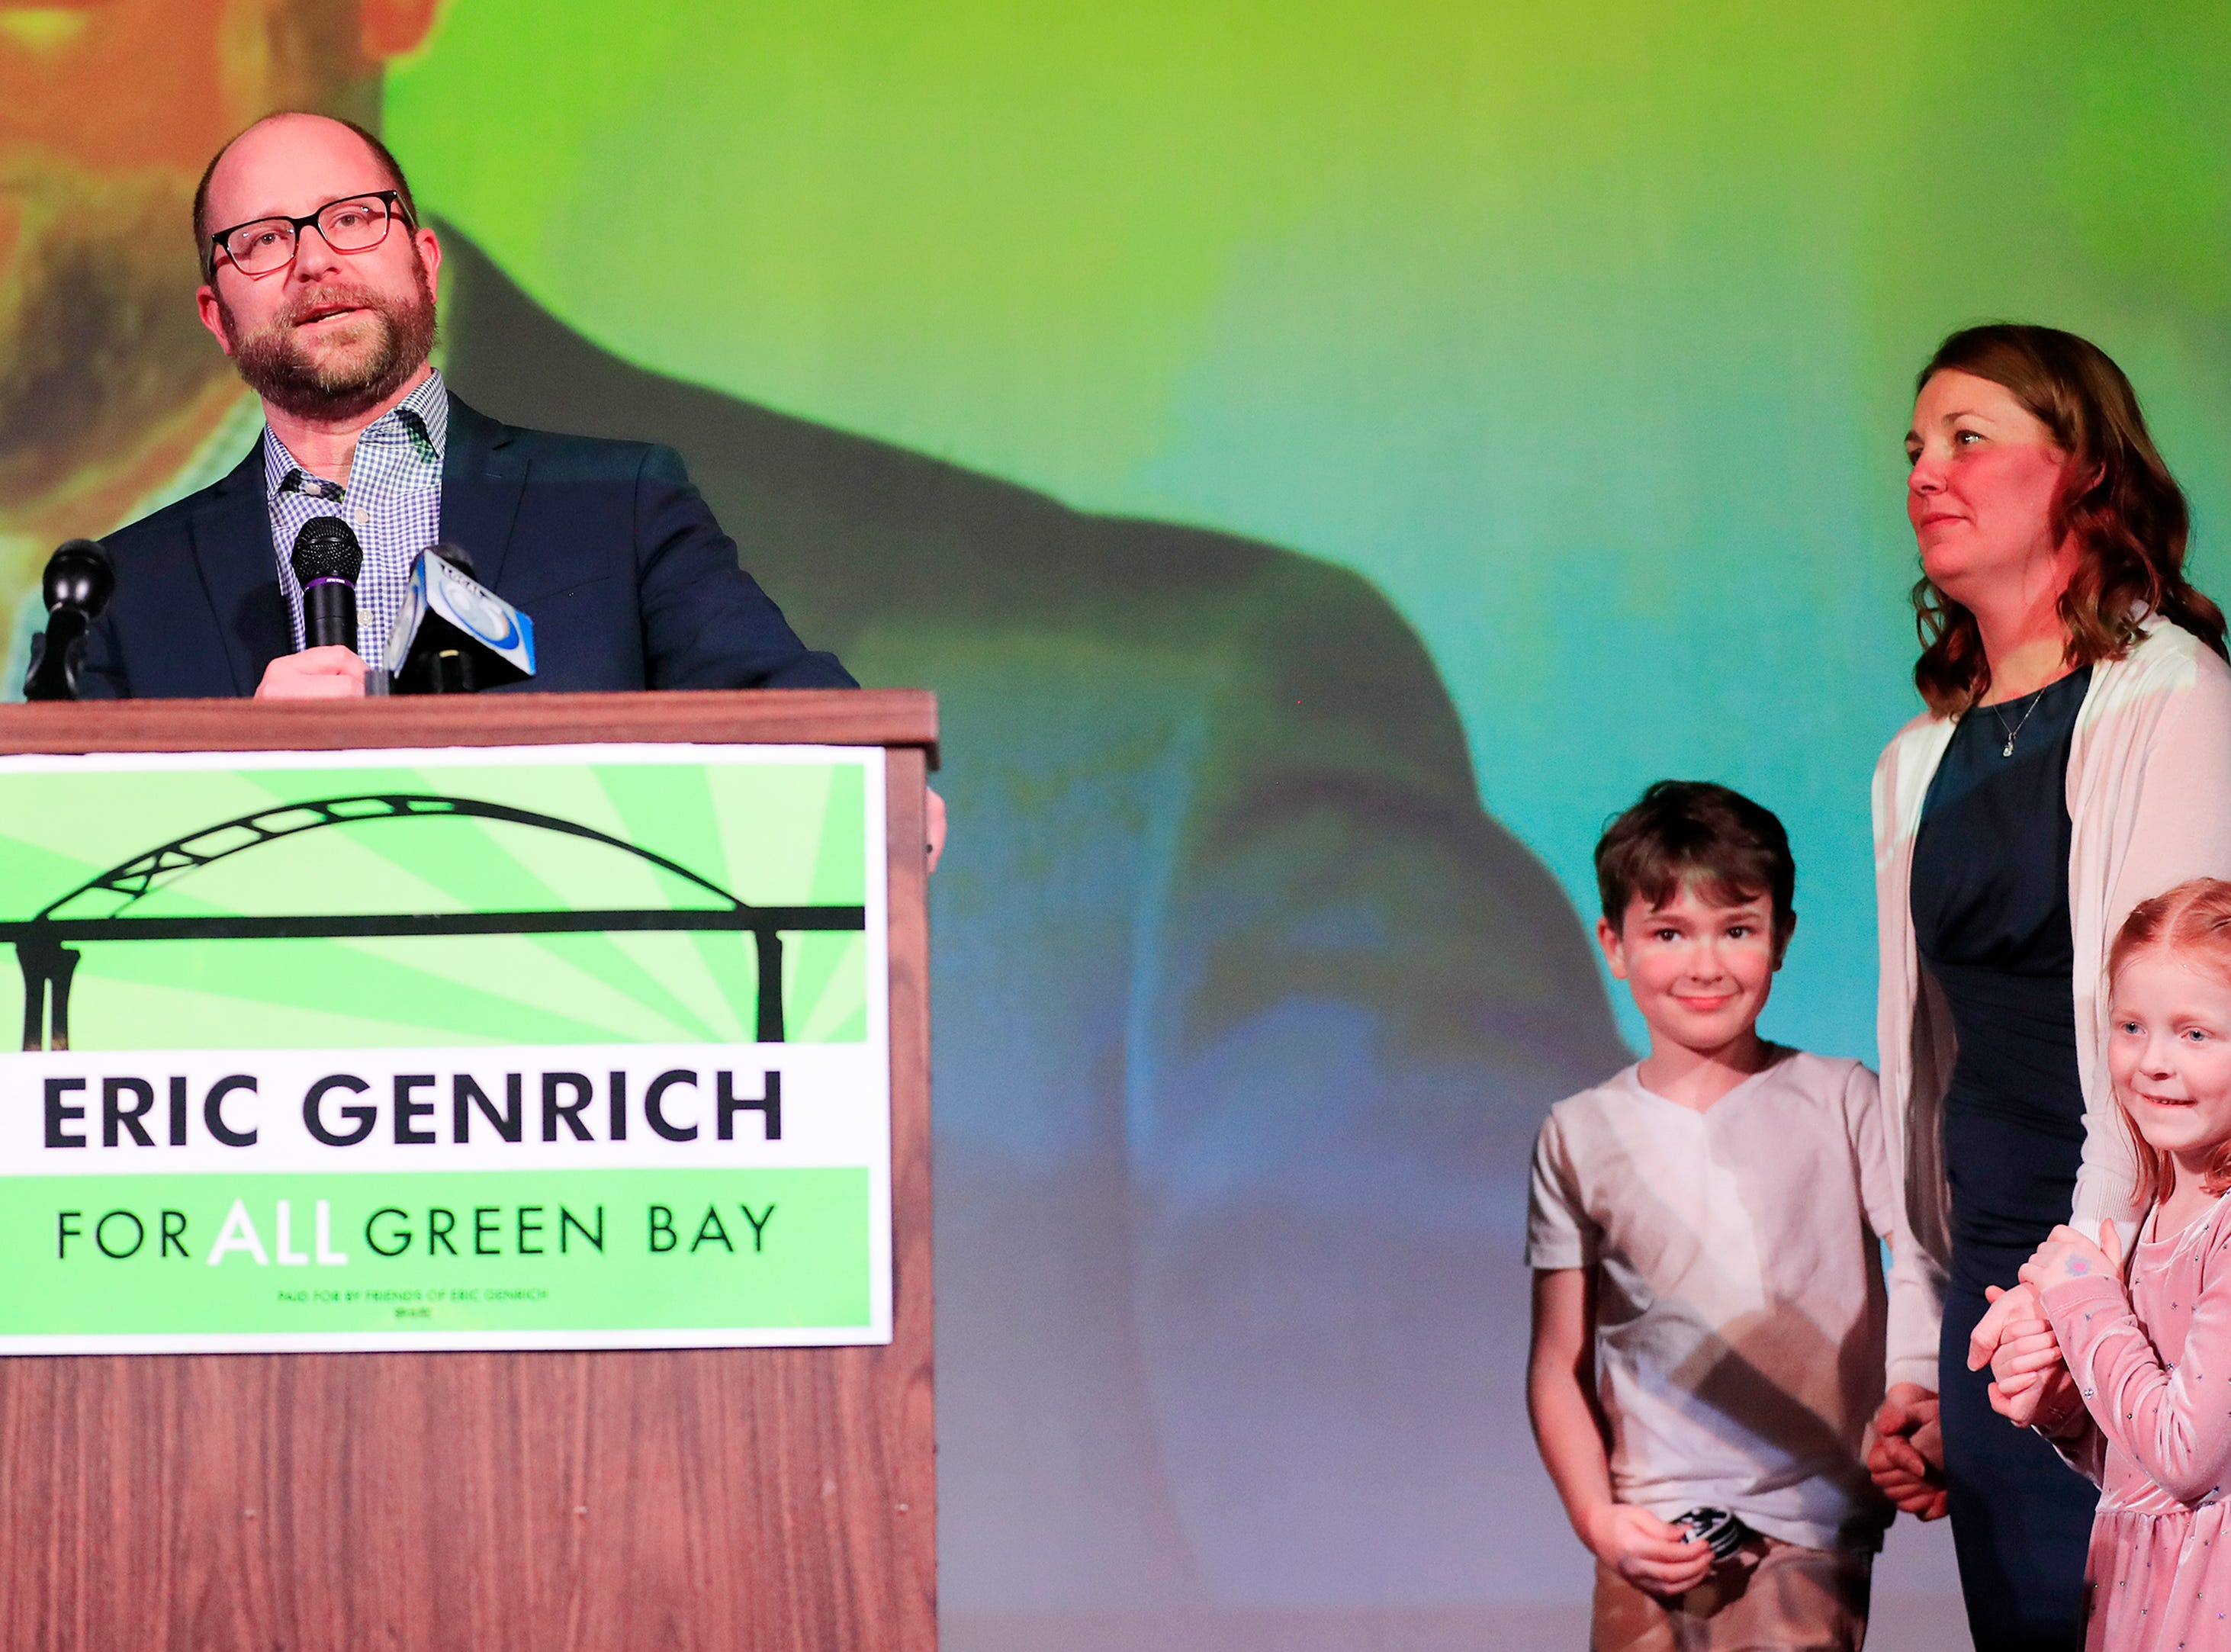 Green Bay Mayor-elect Eric Genrich speaks to his supporters at the Tarlton Theater after winning Tuesday's election.